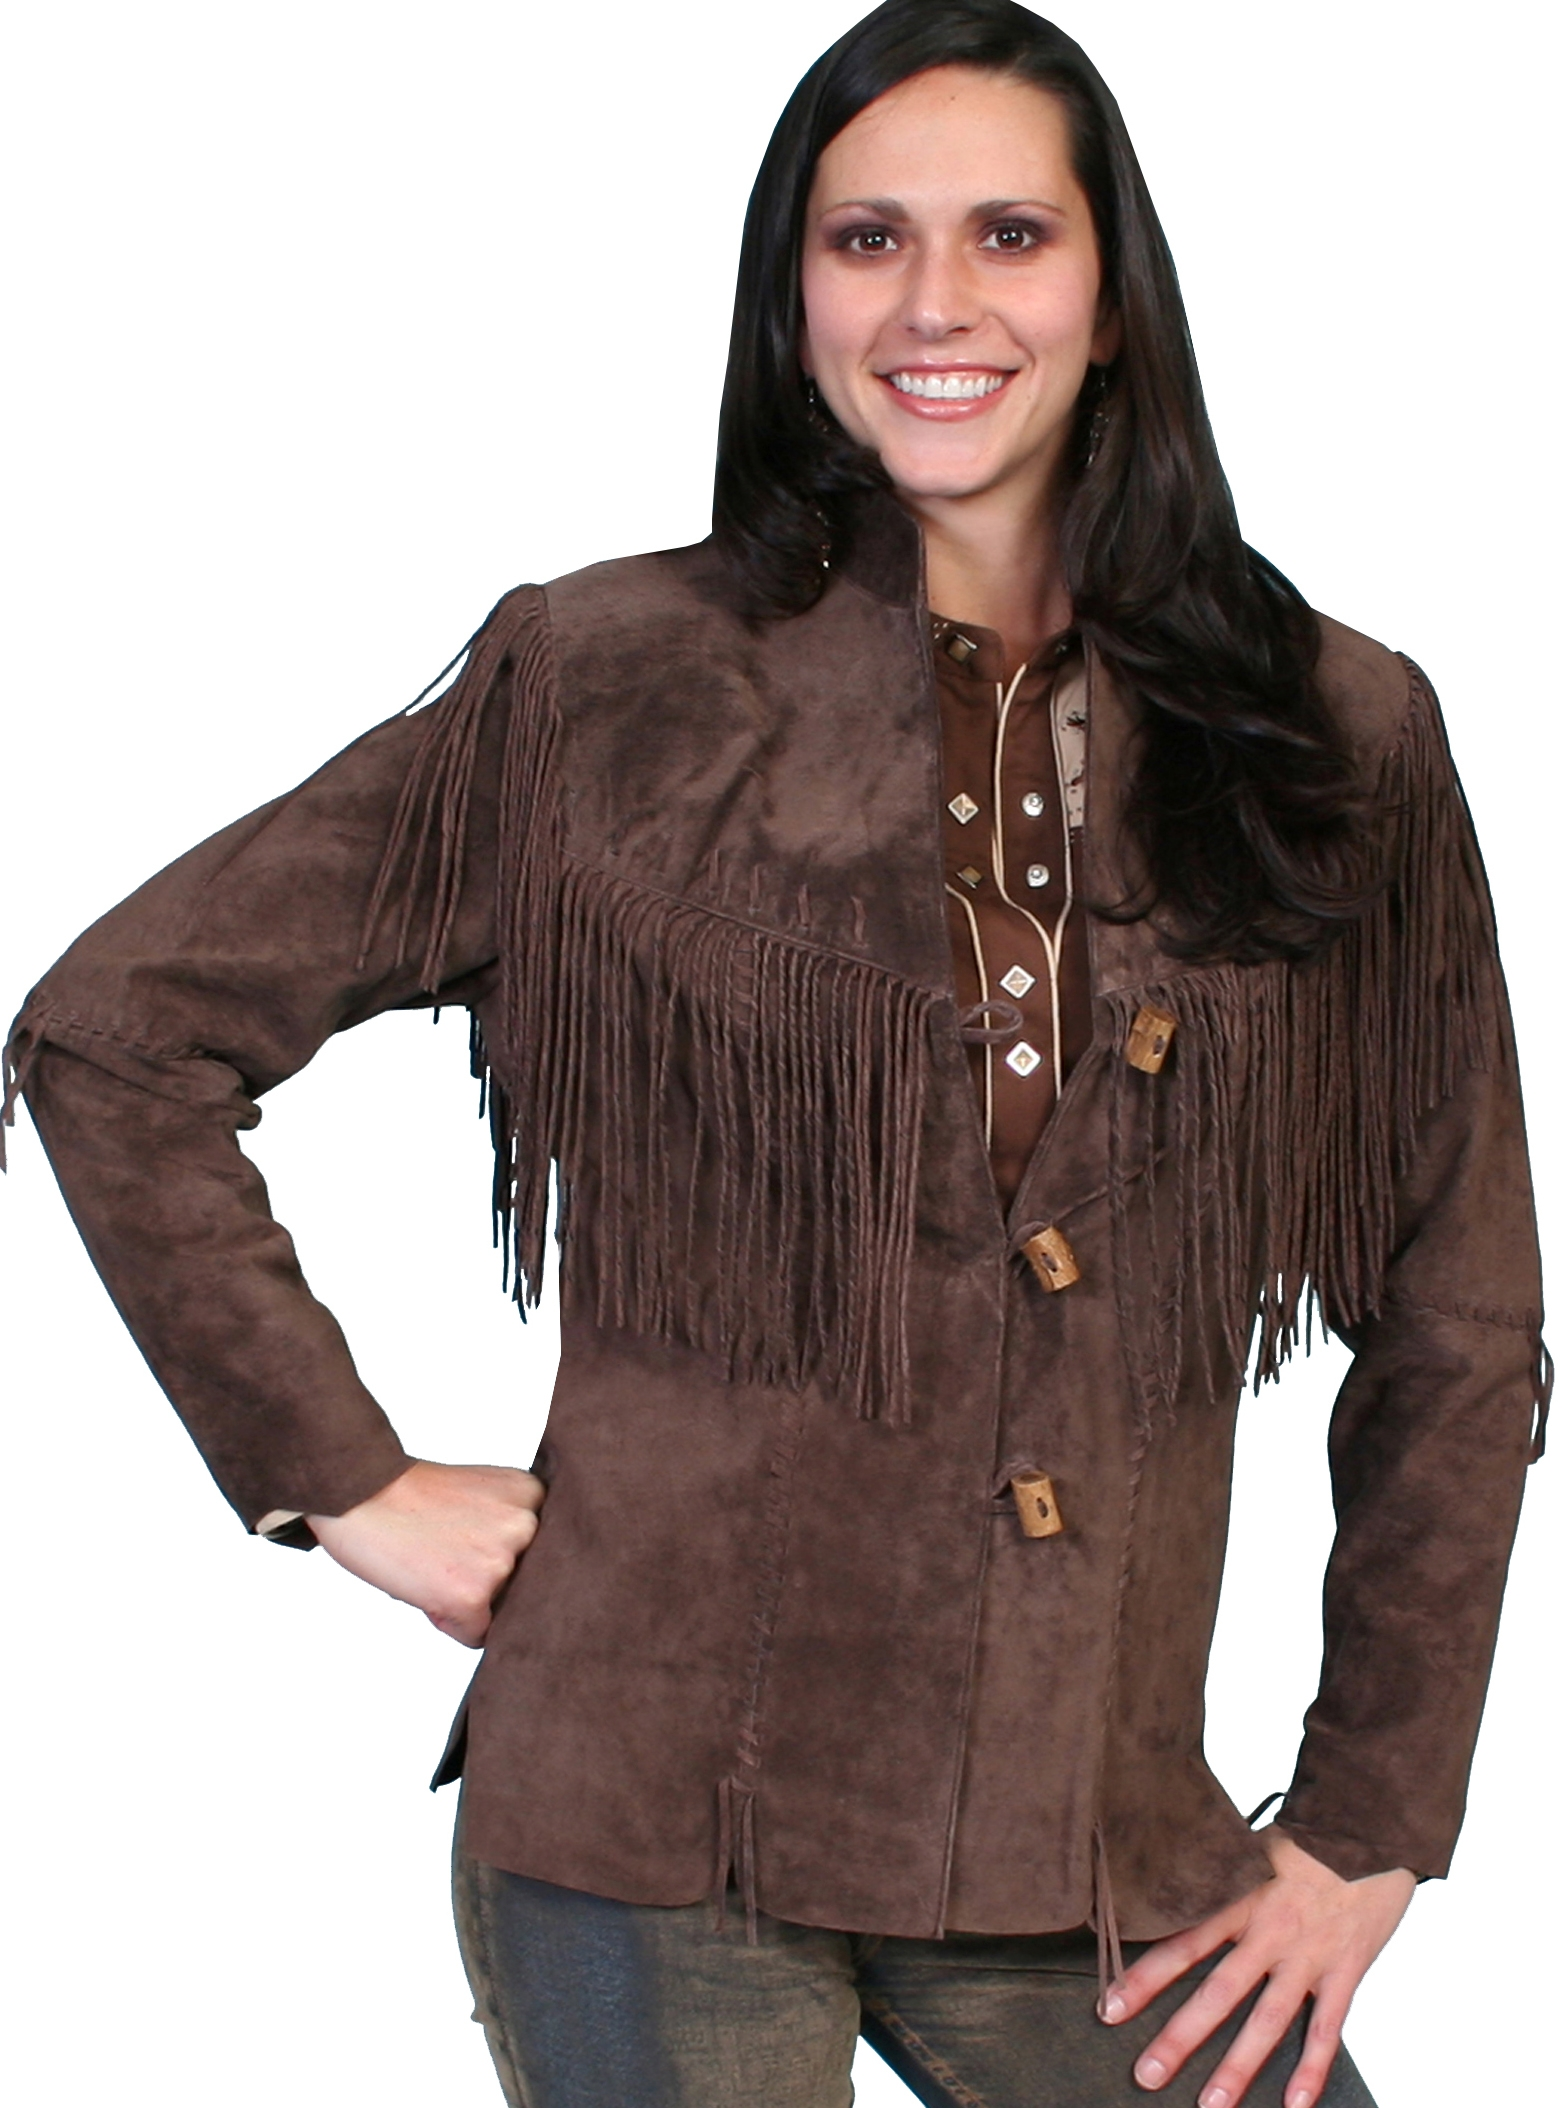 Womens western coats womens fringe jackets fringe coats for women